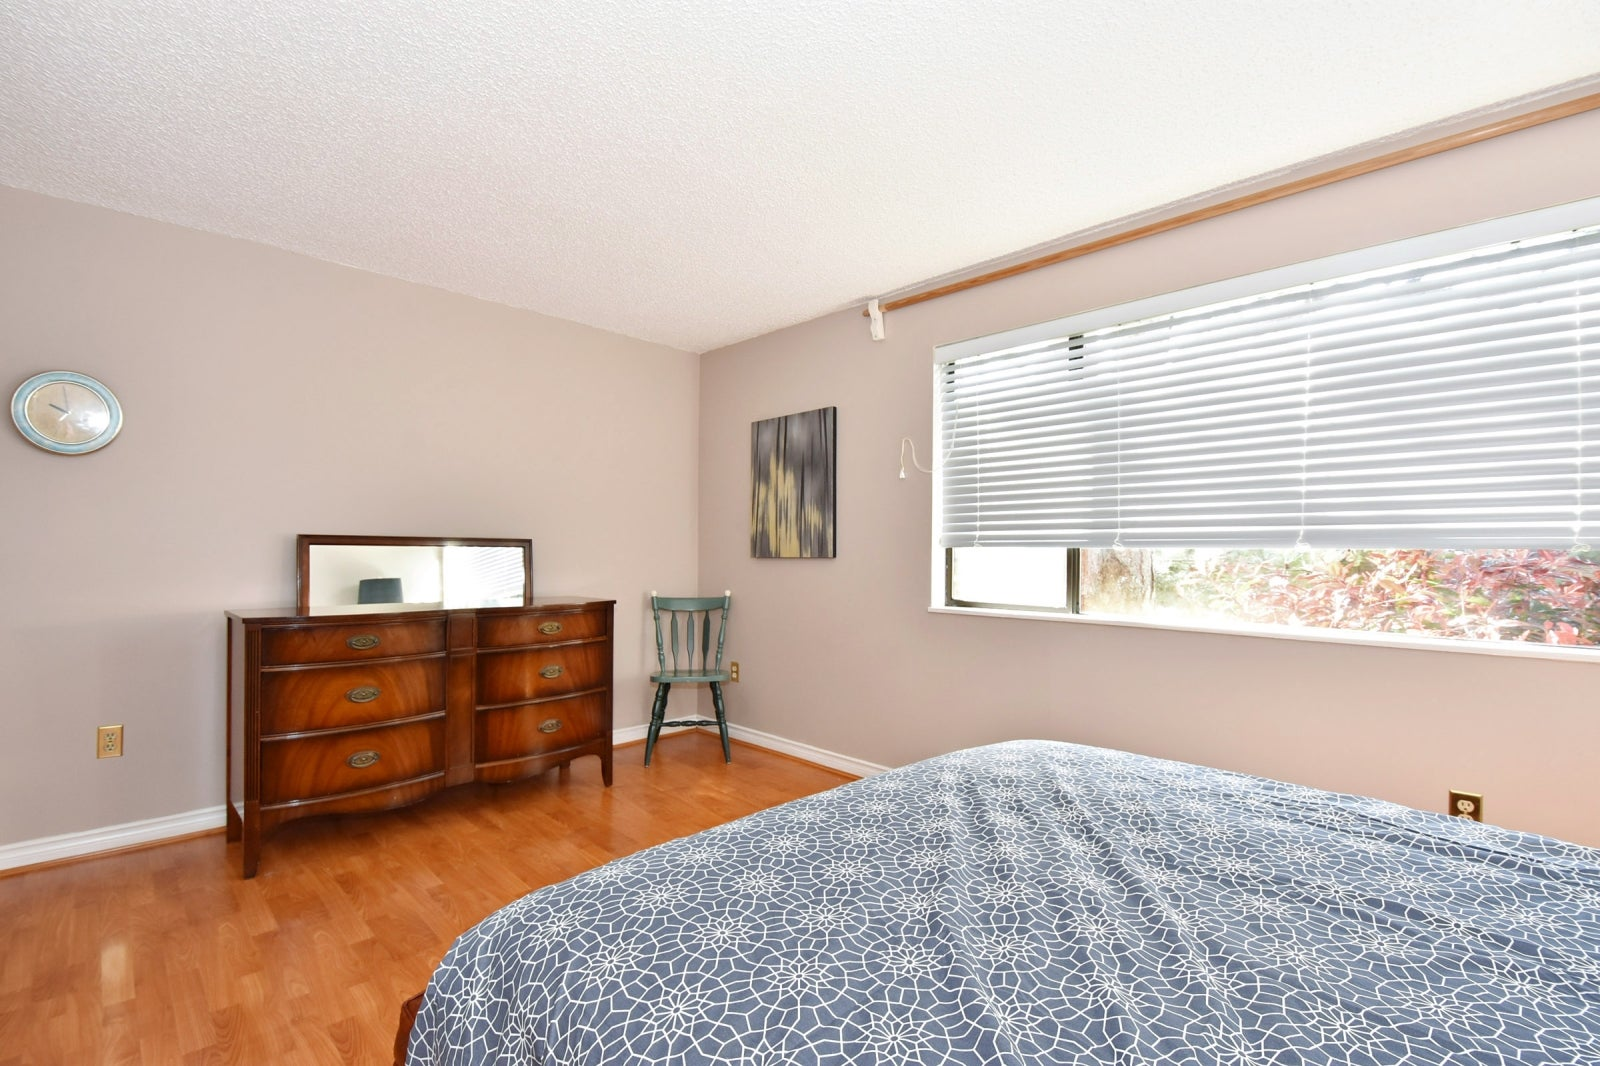 168 7293 MOFFATT ROAD - Brighouse South Apartment/Condo for sale, 2 Bedrooms (R2261480) #14